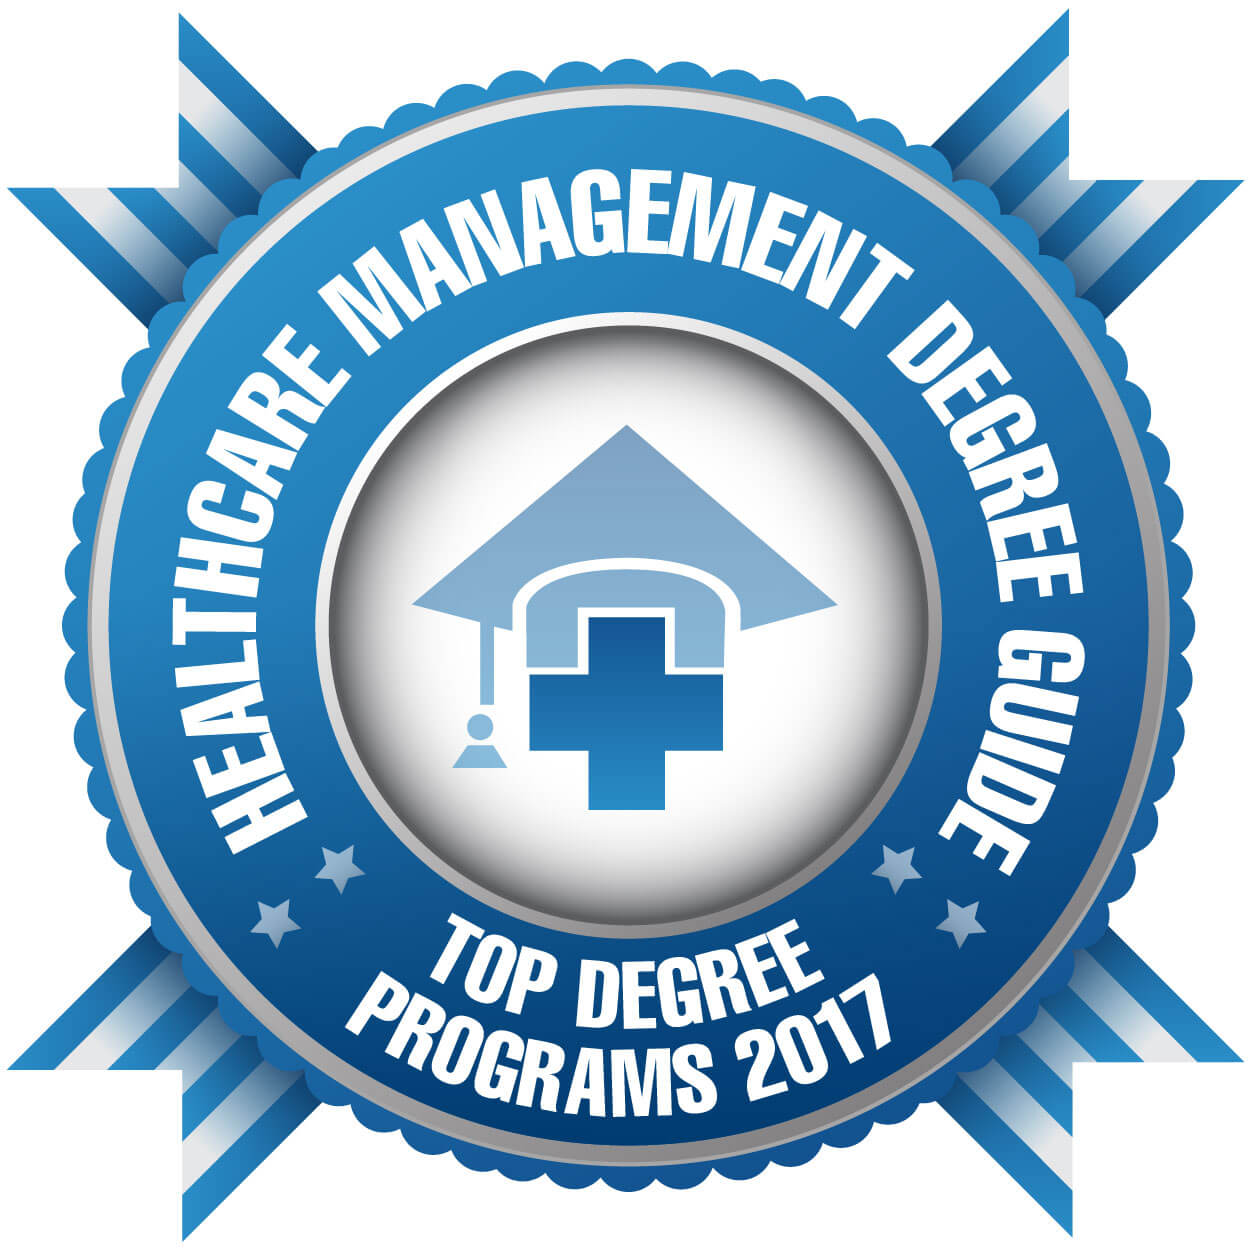 Top 25 health information management degree programs 2017 2018 click here for high resolution badge xflitez Choice Image